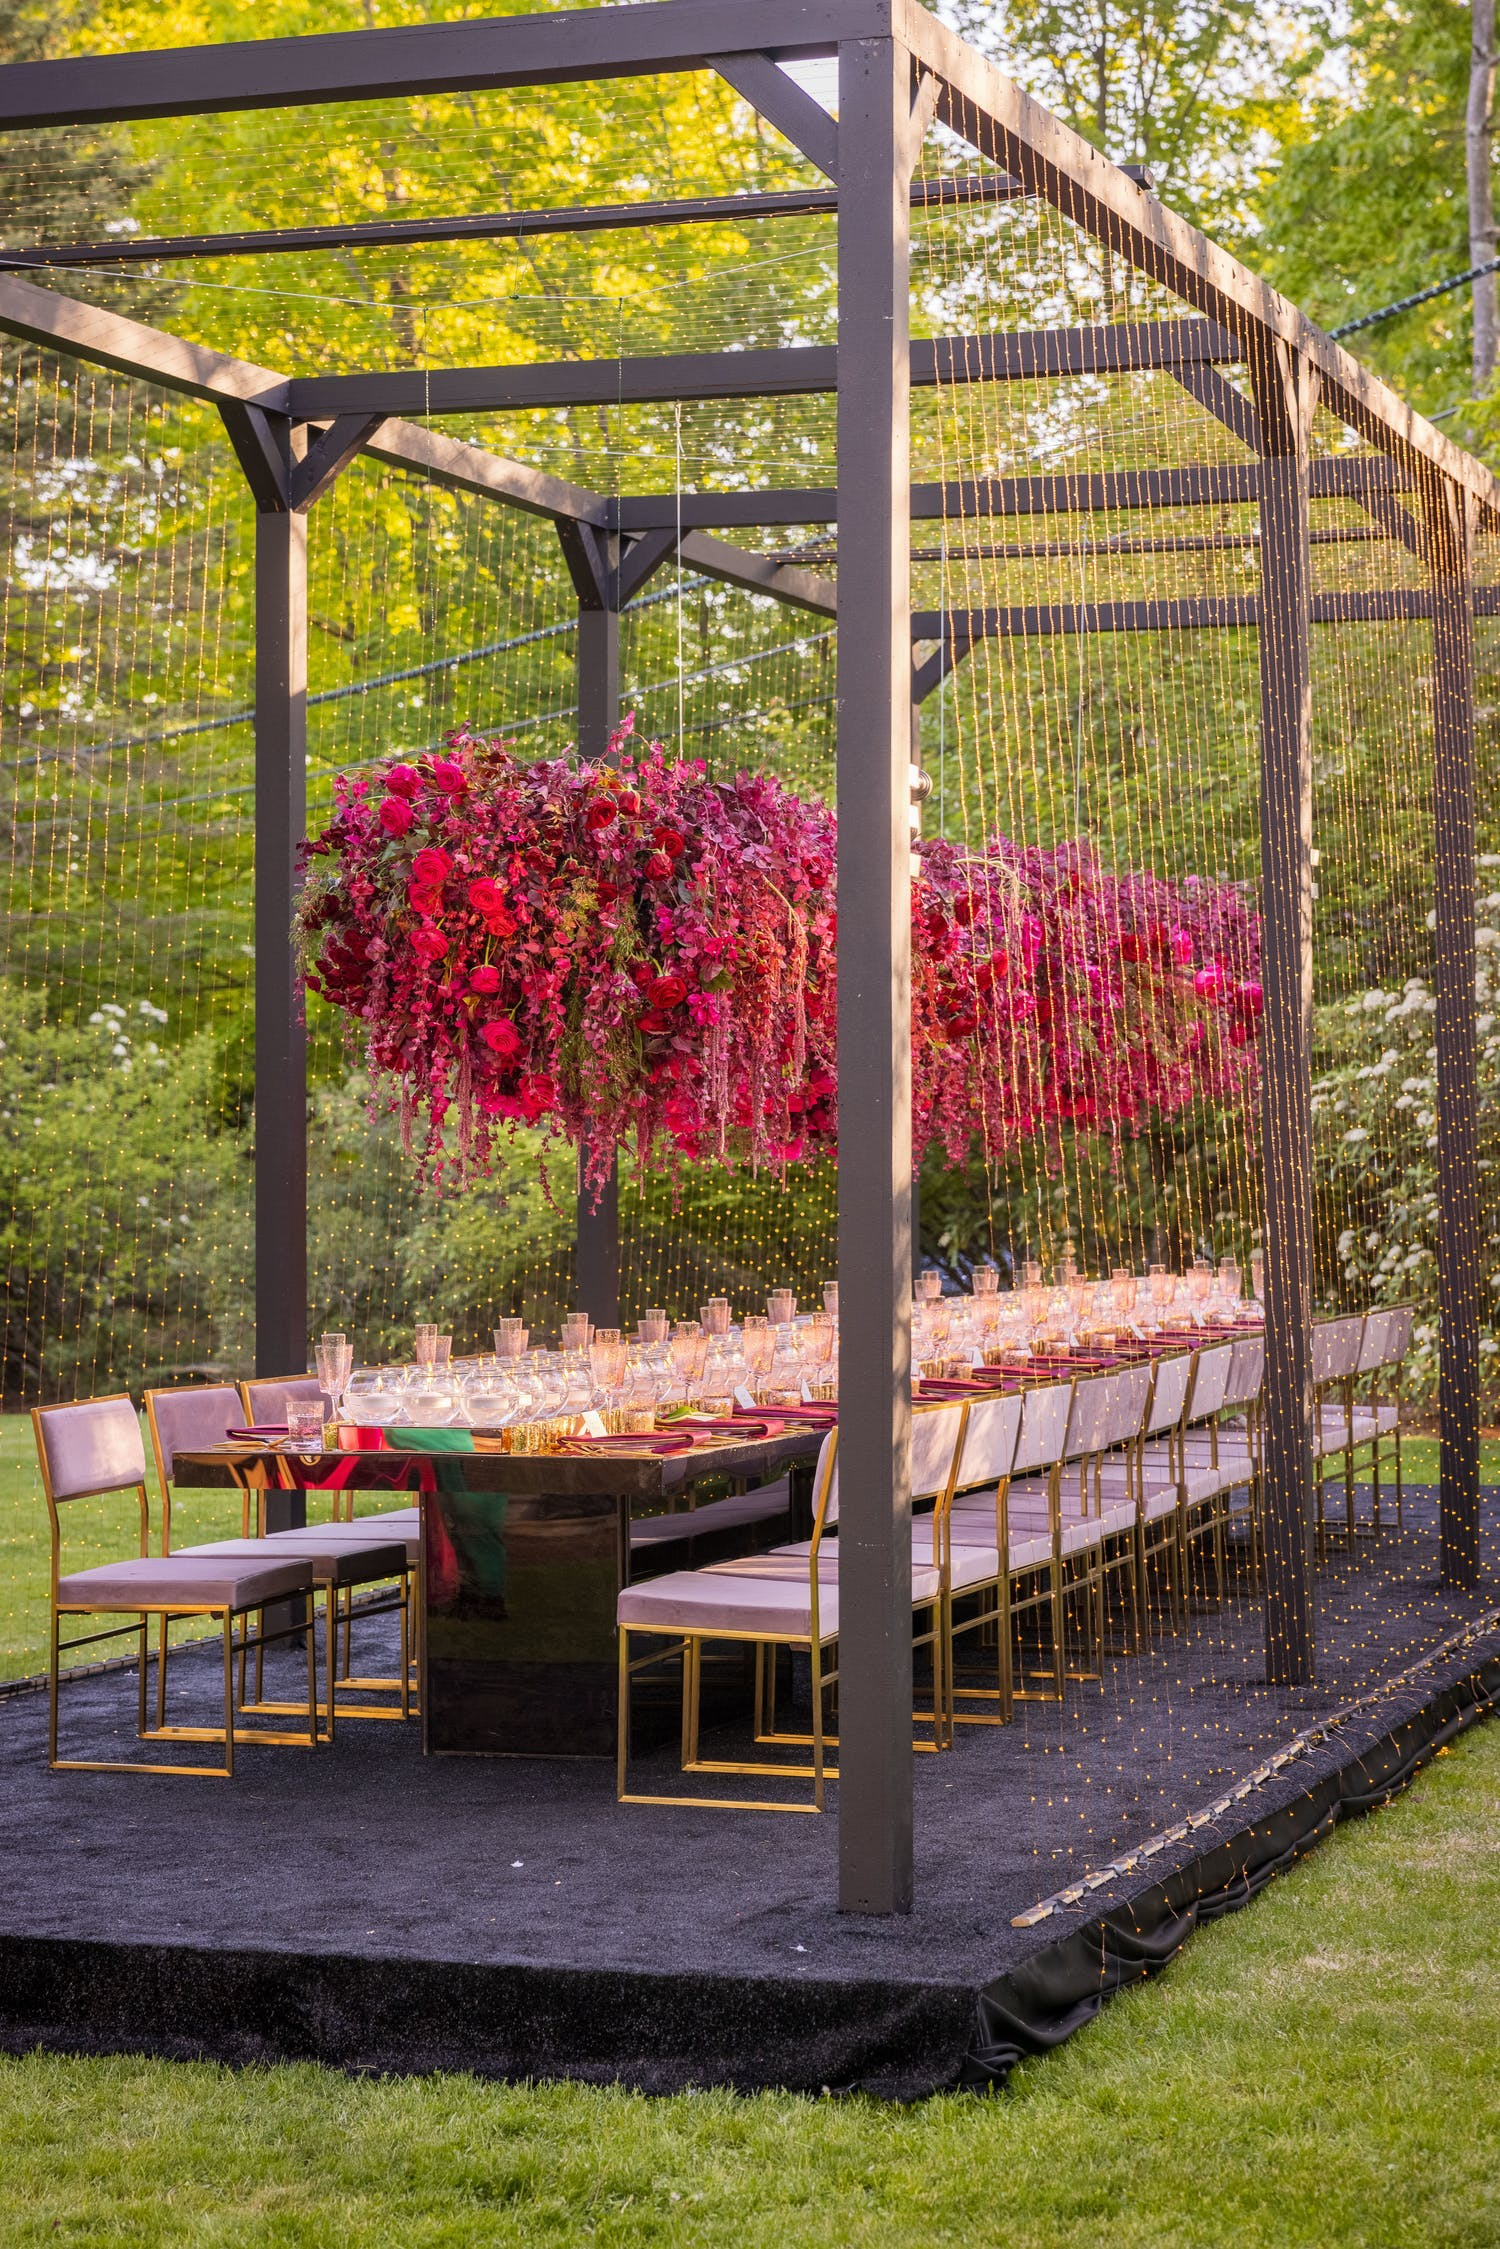 King's Table with Overhanging Pink Floral Centerpieces Suspended from Wooden Cabana with String Light Tassels   PartySlate